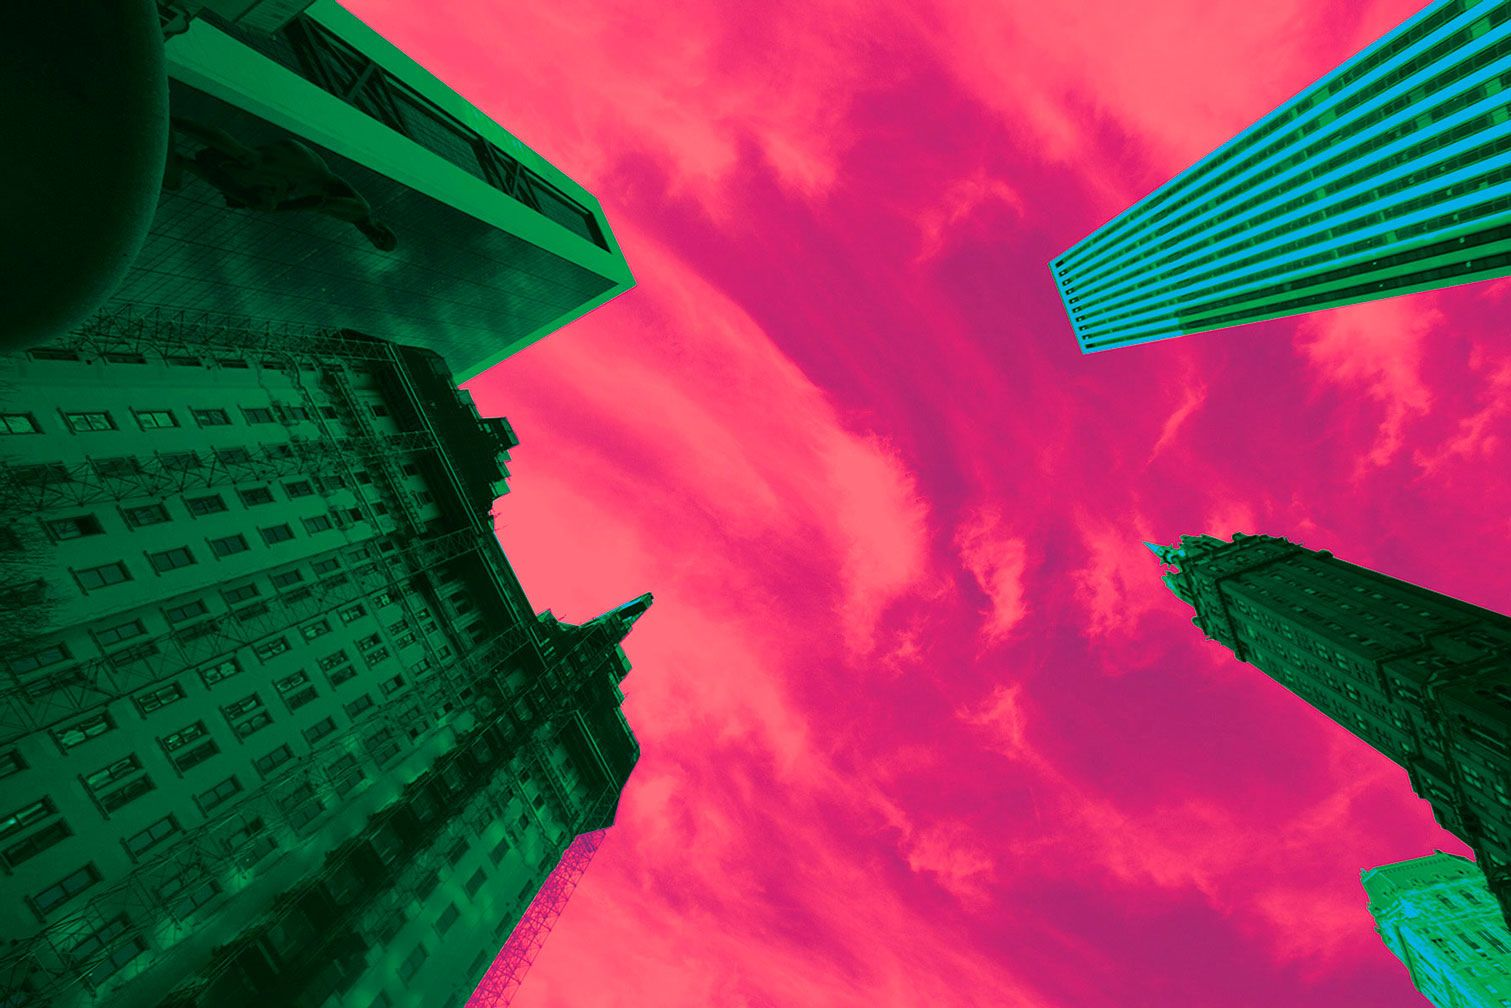 Green Buildings Meet Pink Sky